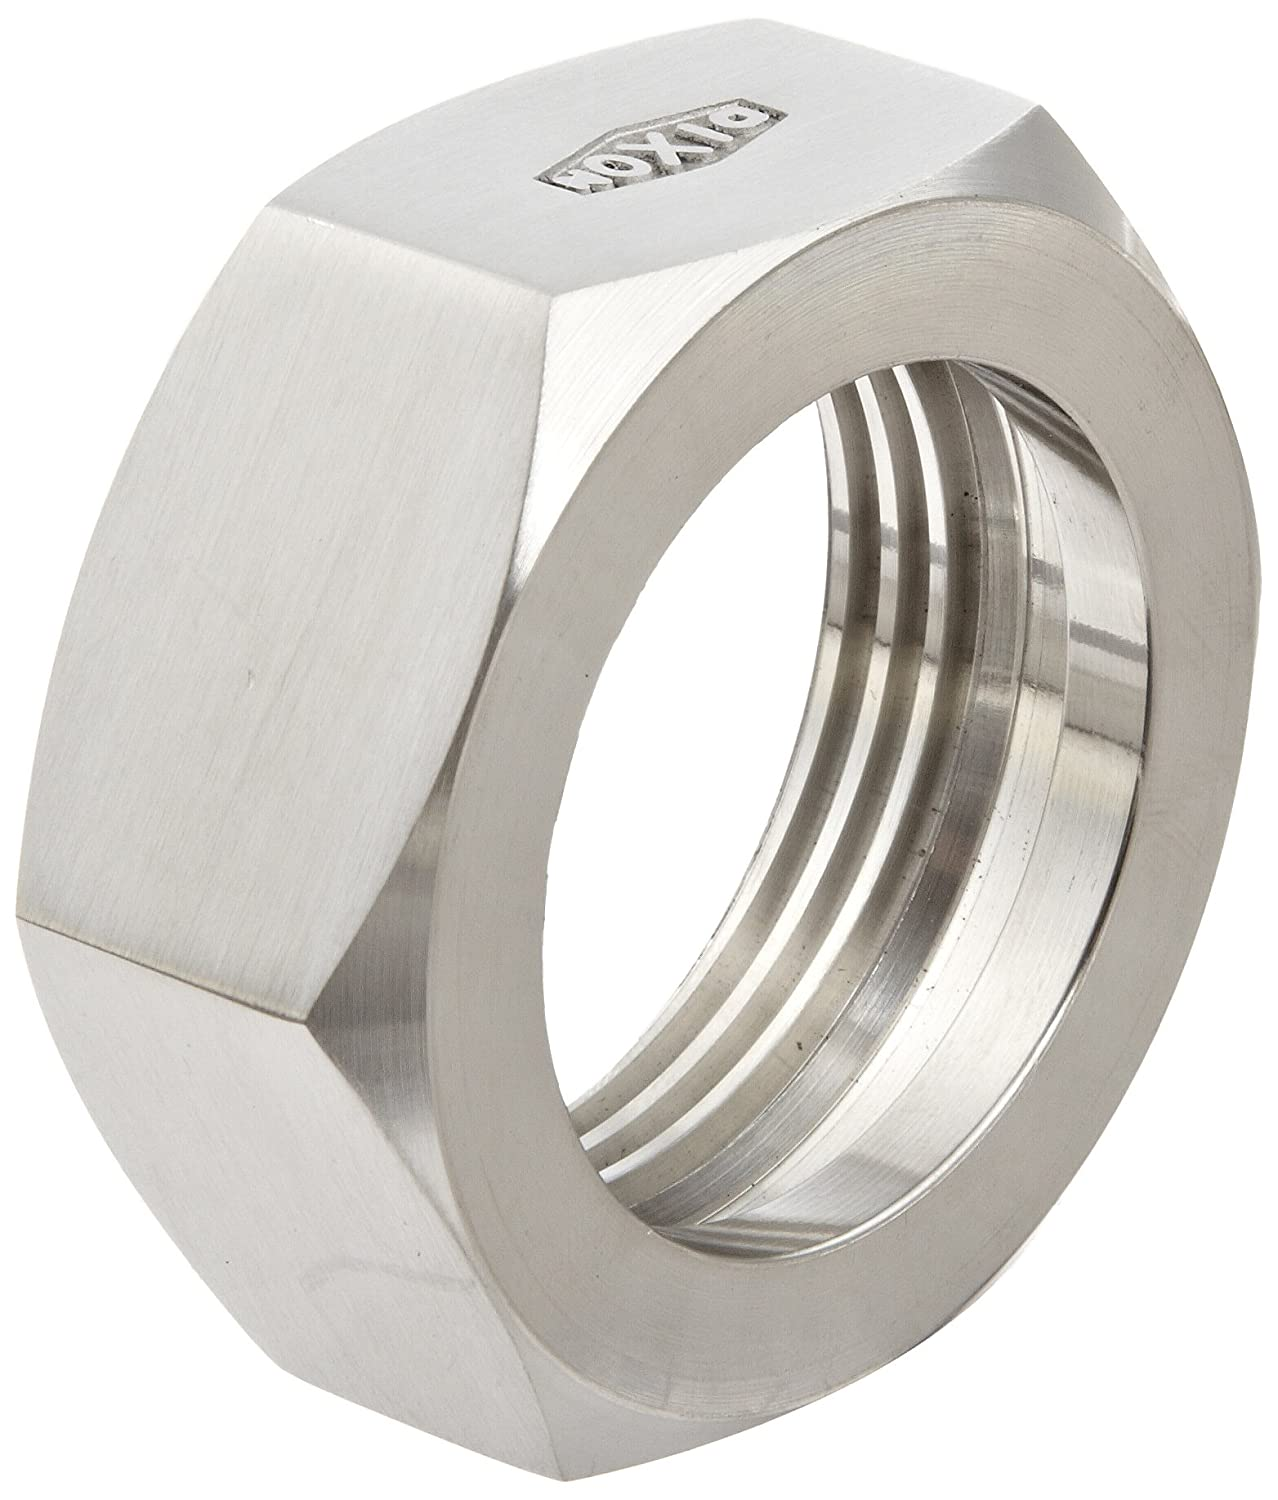 Dixon 13H-G150 Stainless Steel 304 Kansas City Max 67% OFF Mall Bevel Seat Fitting Sanitary